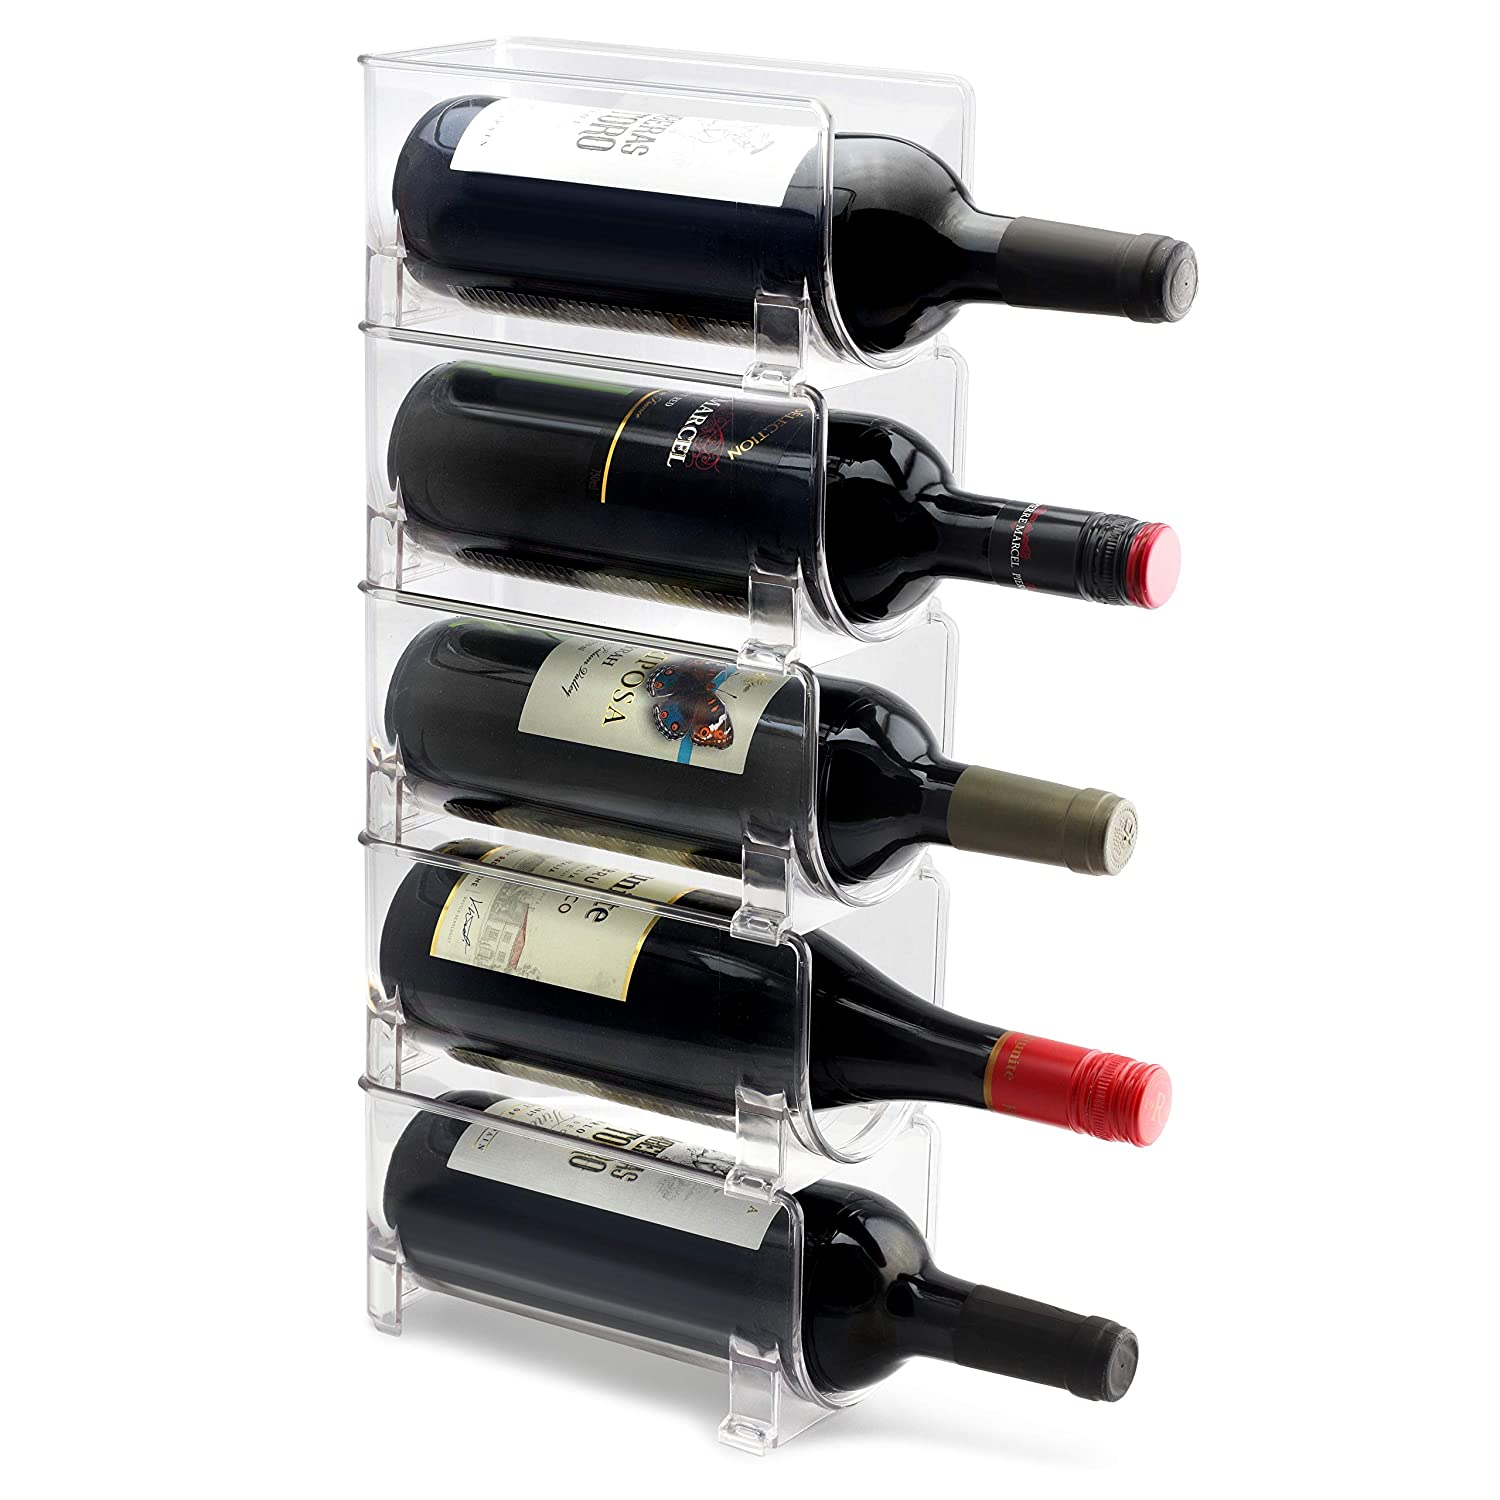 ELTOW Modular Wine Rack (5-Pack) Stackable Display and Storage System | Clear, Heavy-Duty PET Plastic | Home Kitchen, Bar, Countertop, or Dining Room Use